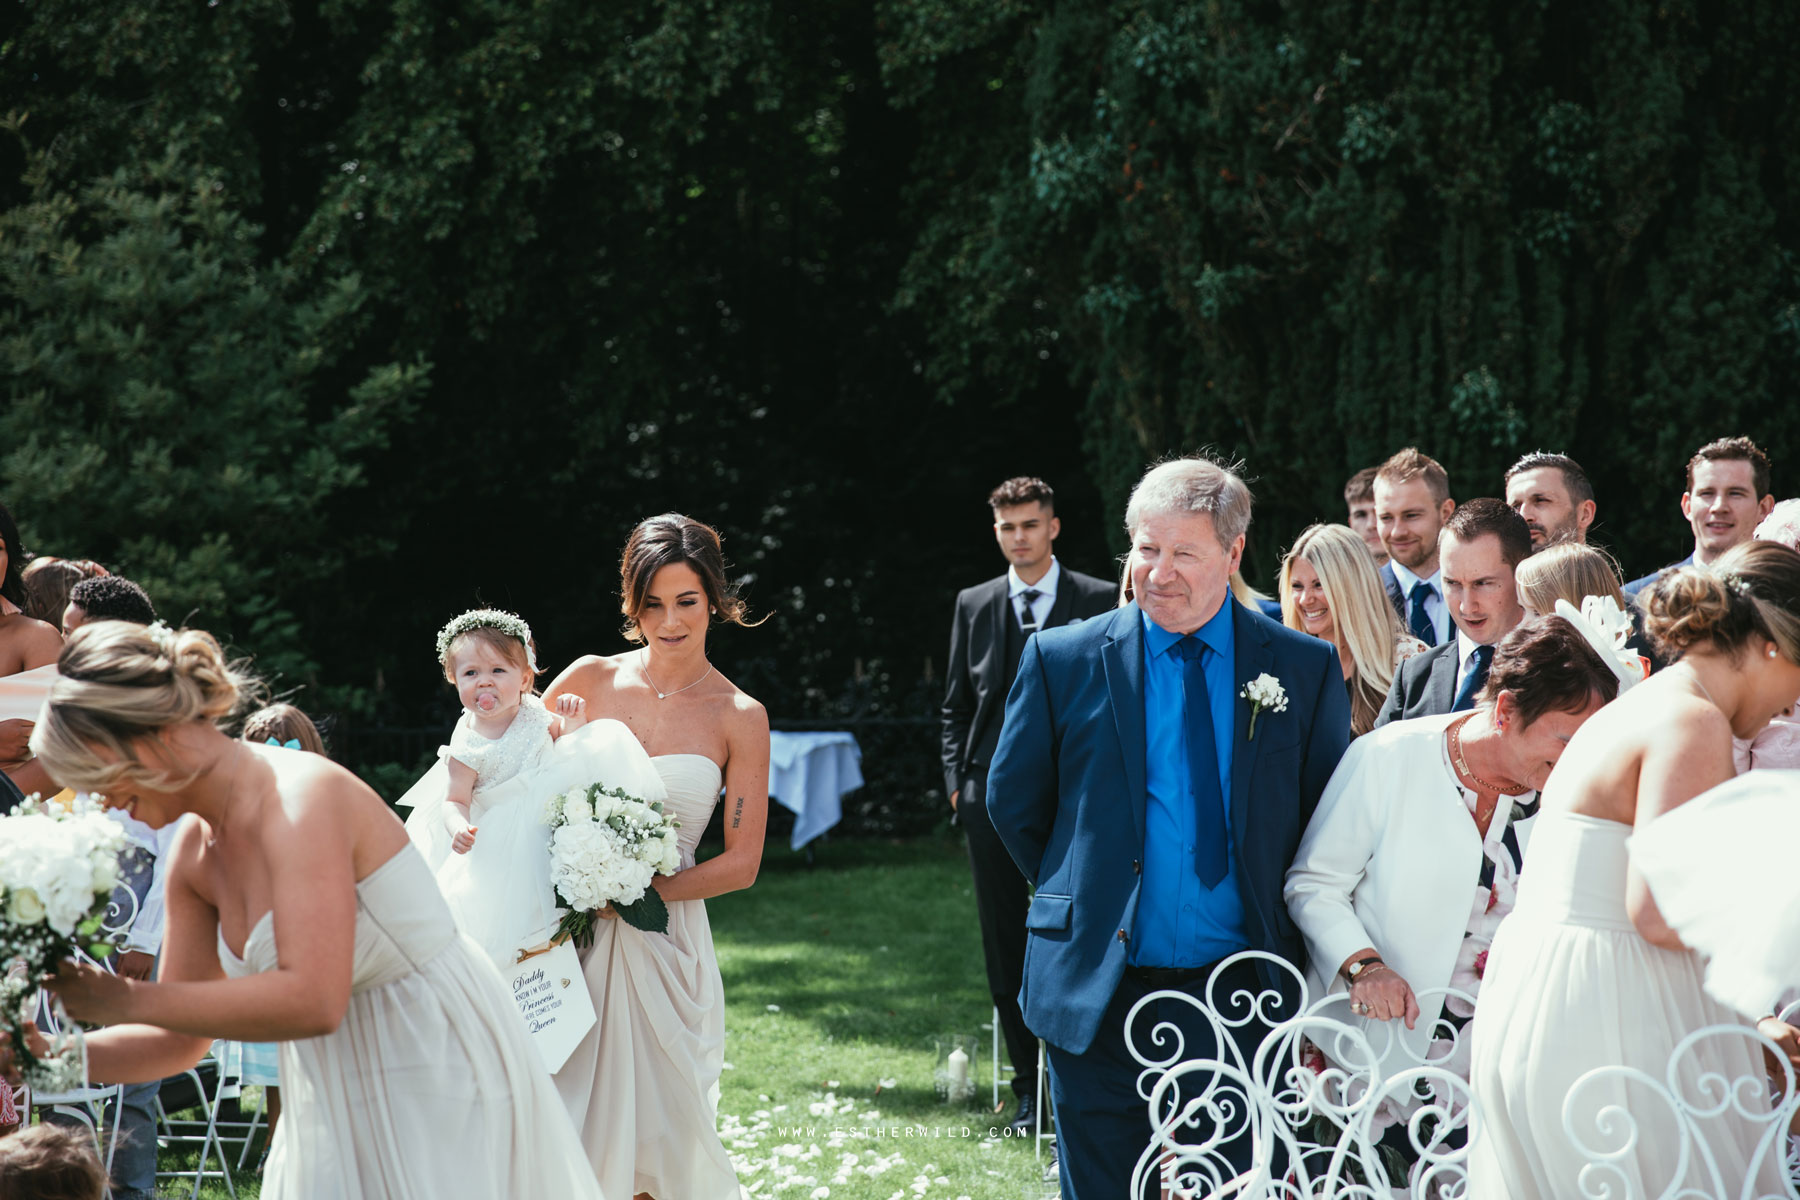 Lynford_Hall_Wedding_Thetford_Mundford_Esther_Wild_Photographer_IMG_1246.jpg